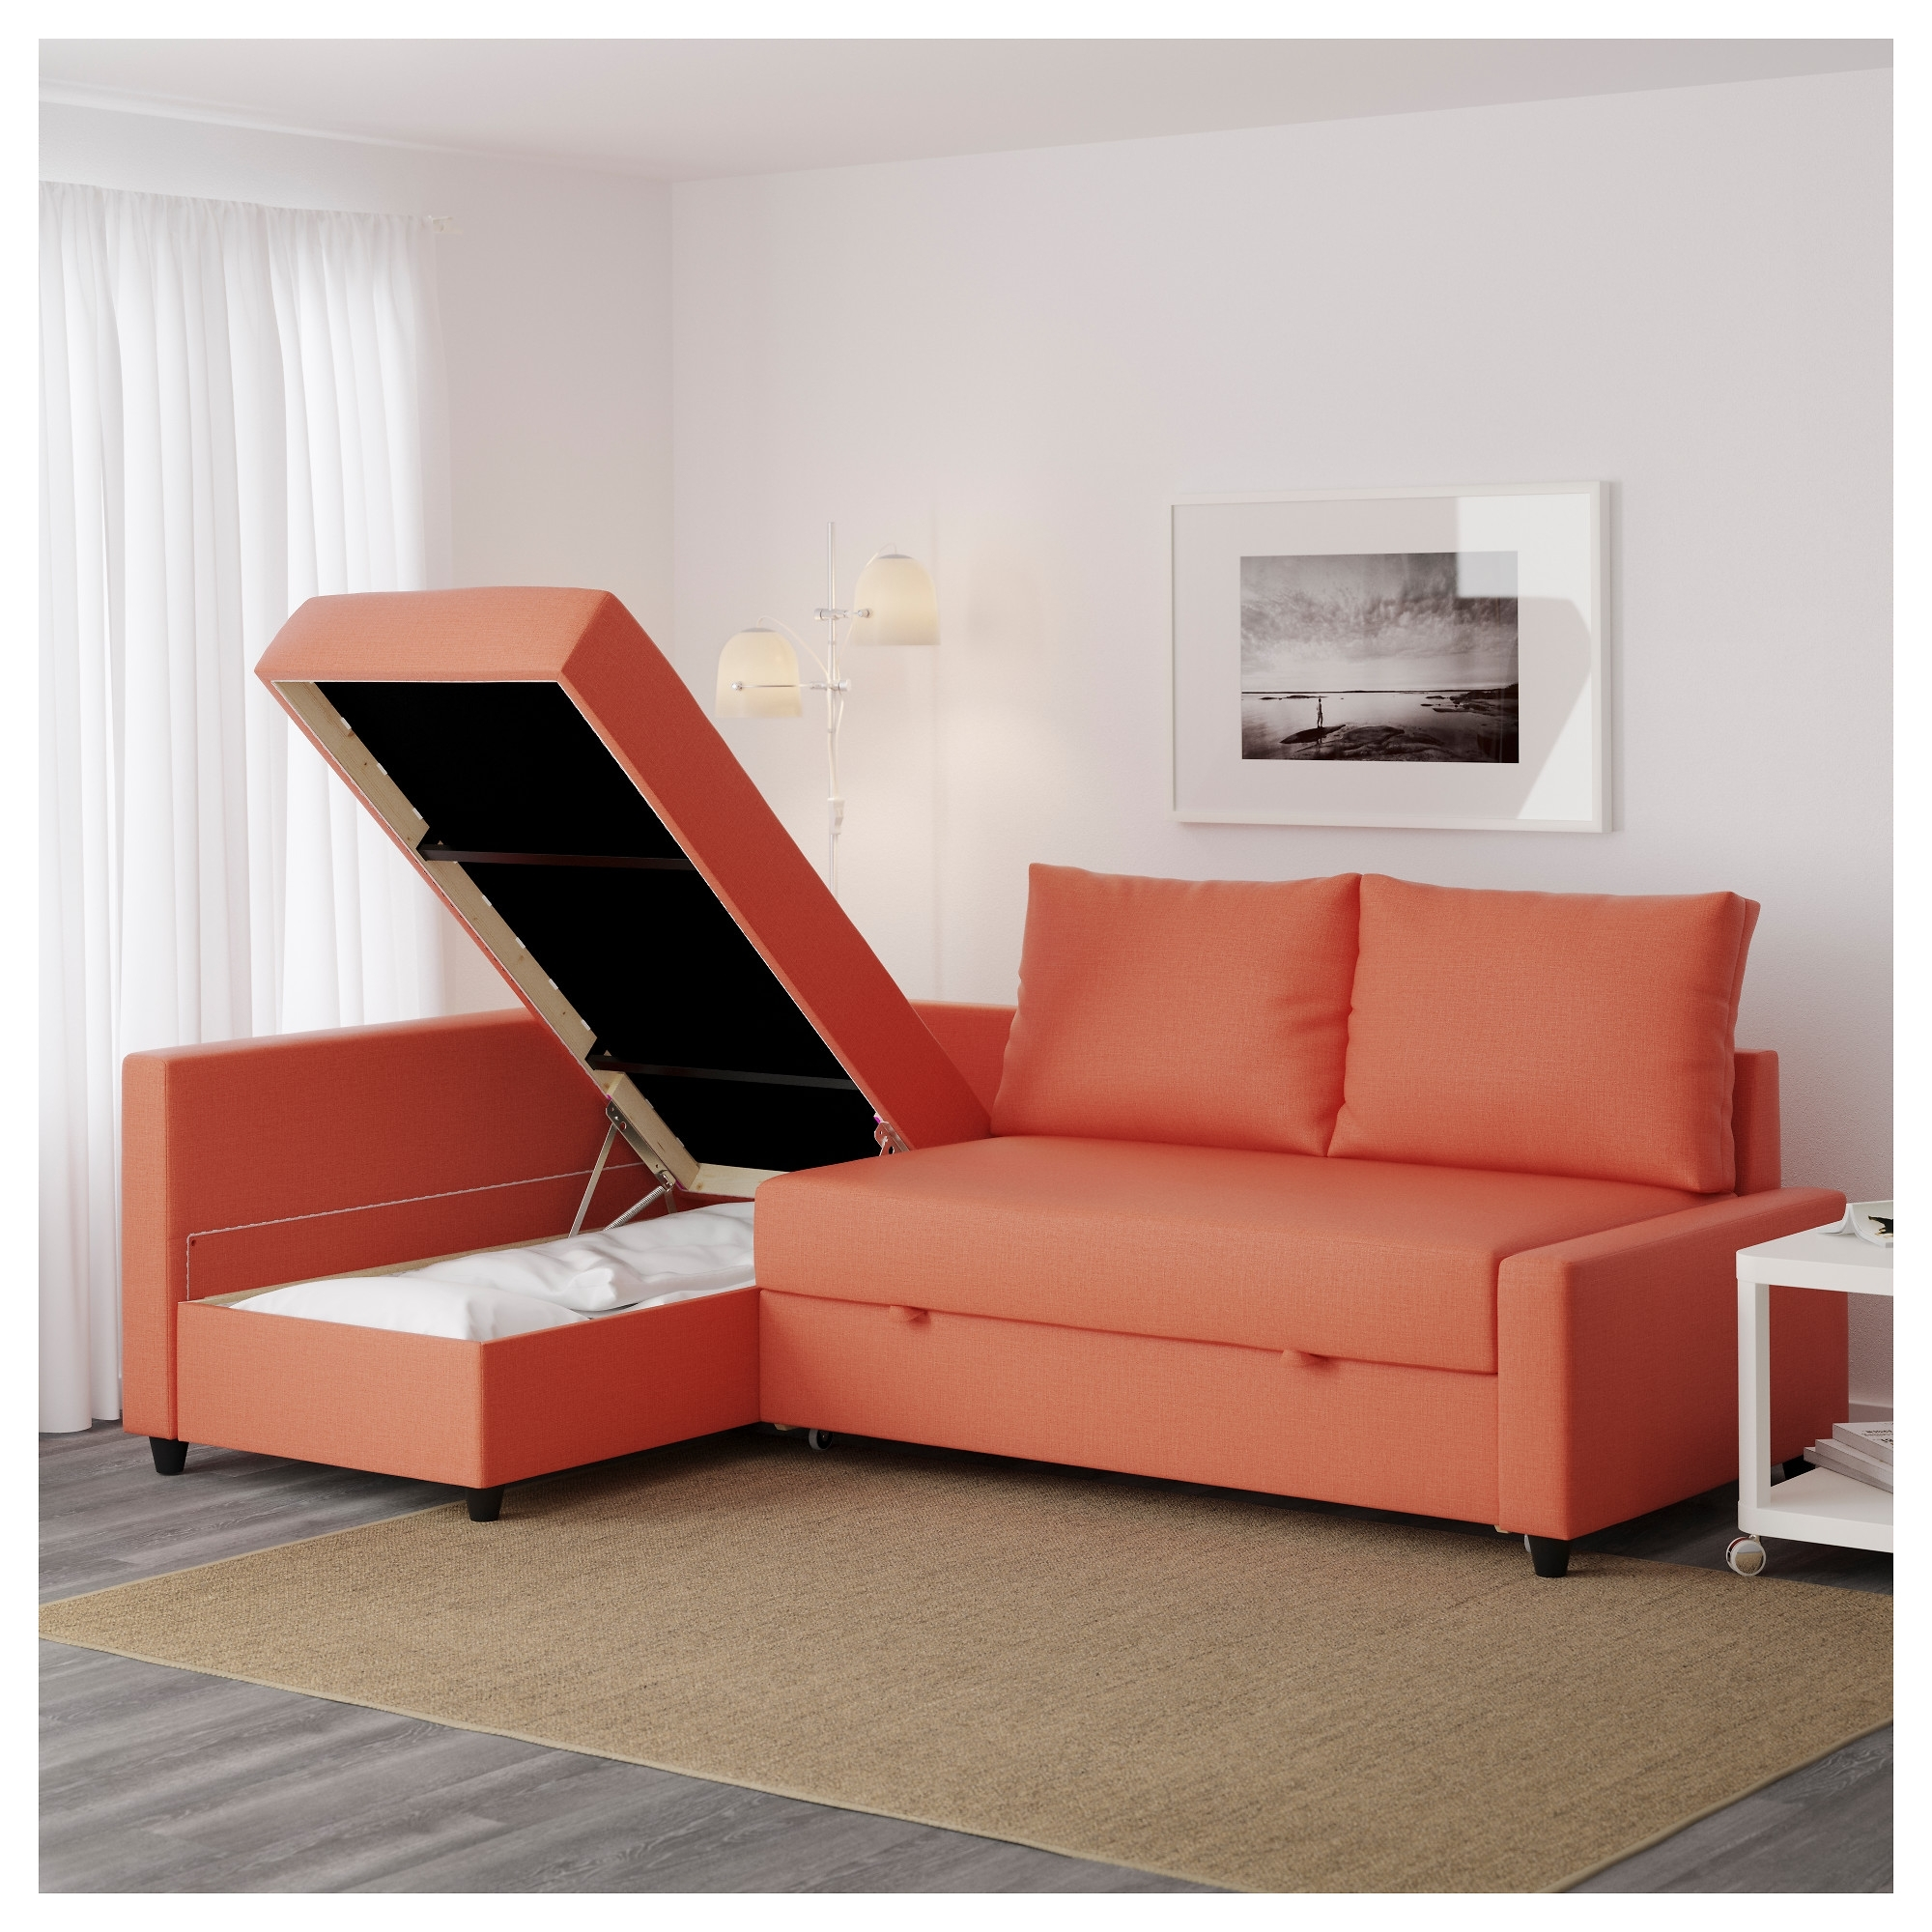 Friheten Corner Sofa-Bed With Storage Skiftebo Dark Orange - Ikea regarding Ikea Corner Sofas With Storage (Image 8 of 10)